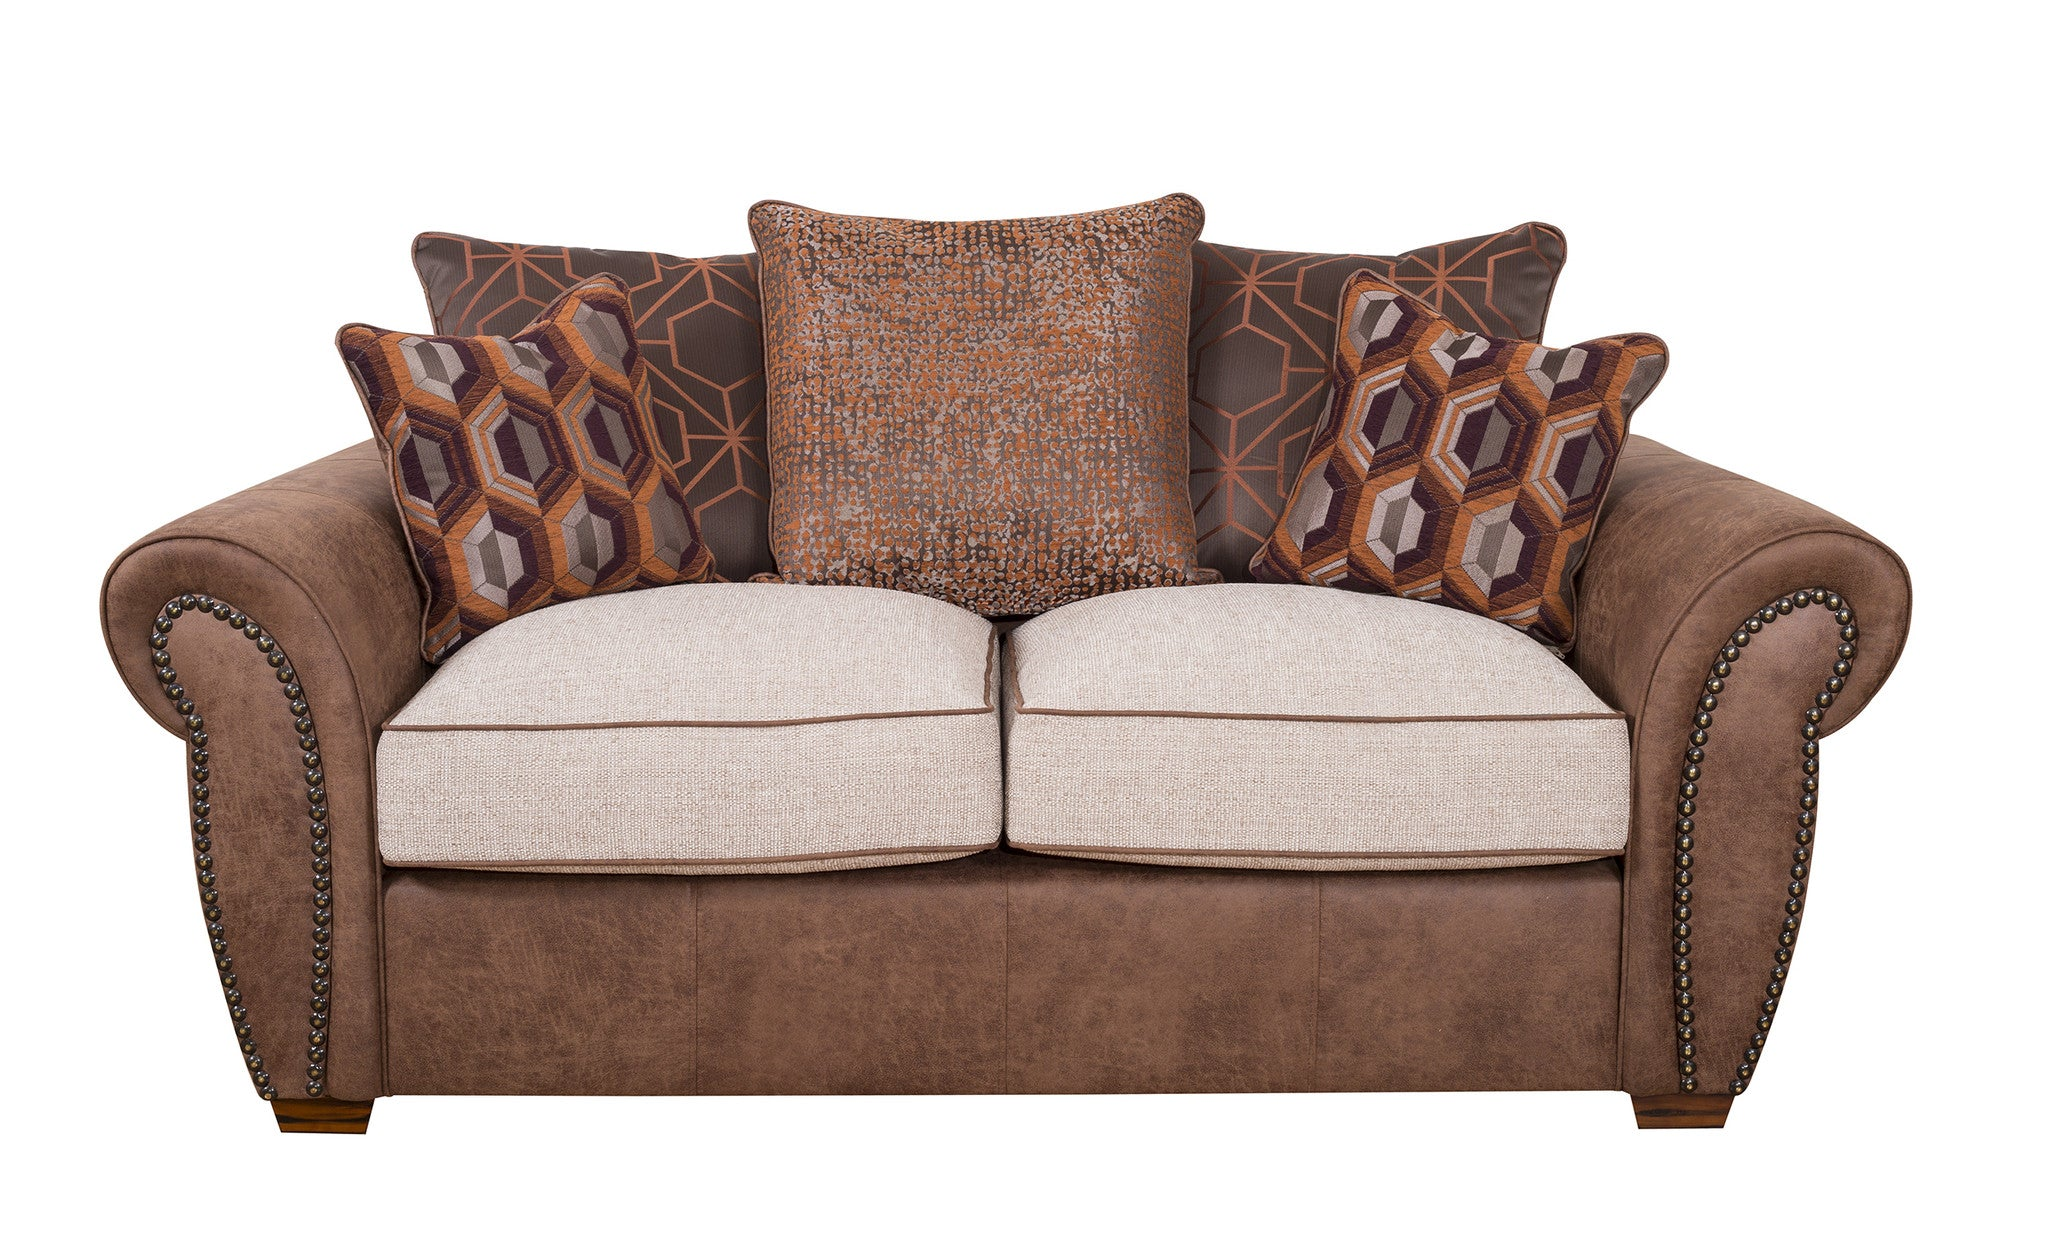 Fabric & Leather Sofas & Armchairs at The Superior Sofa pany